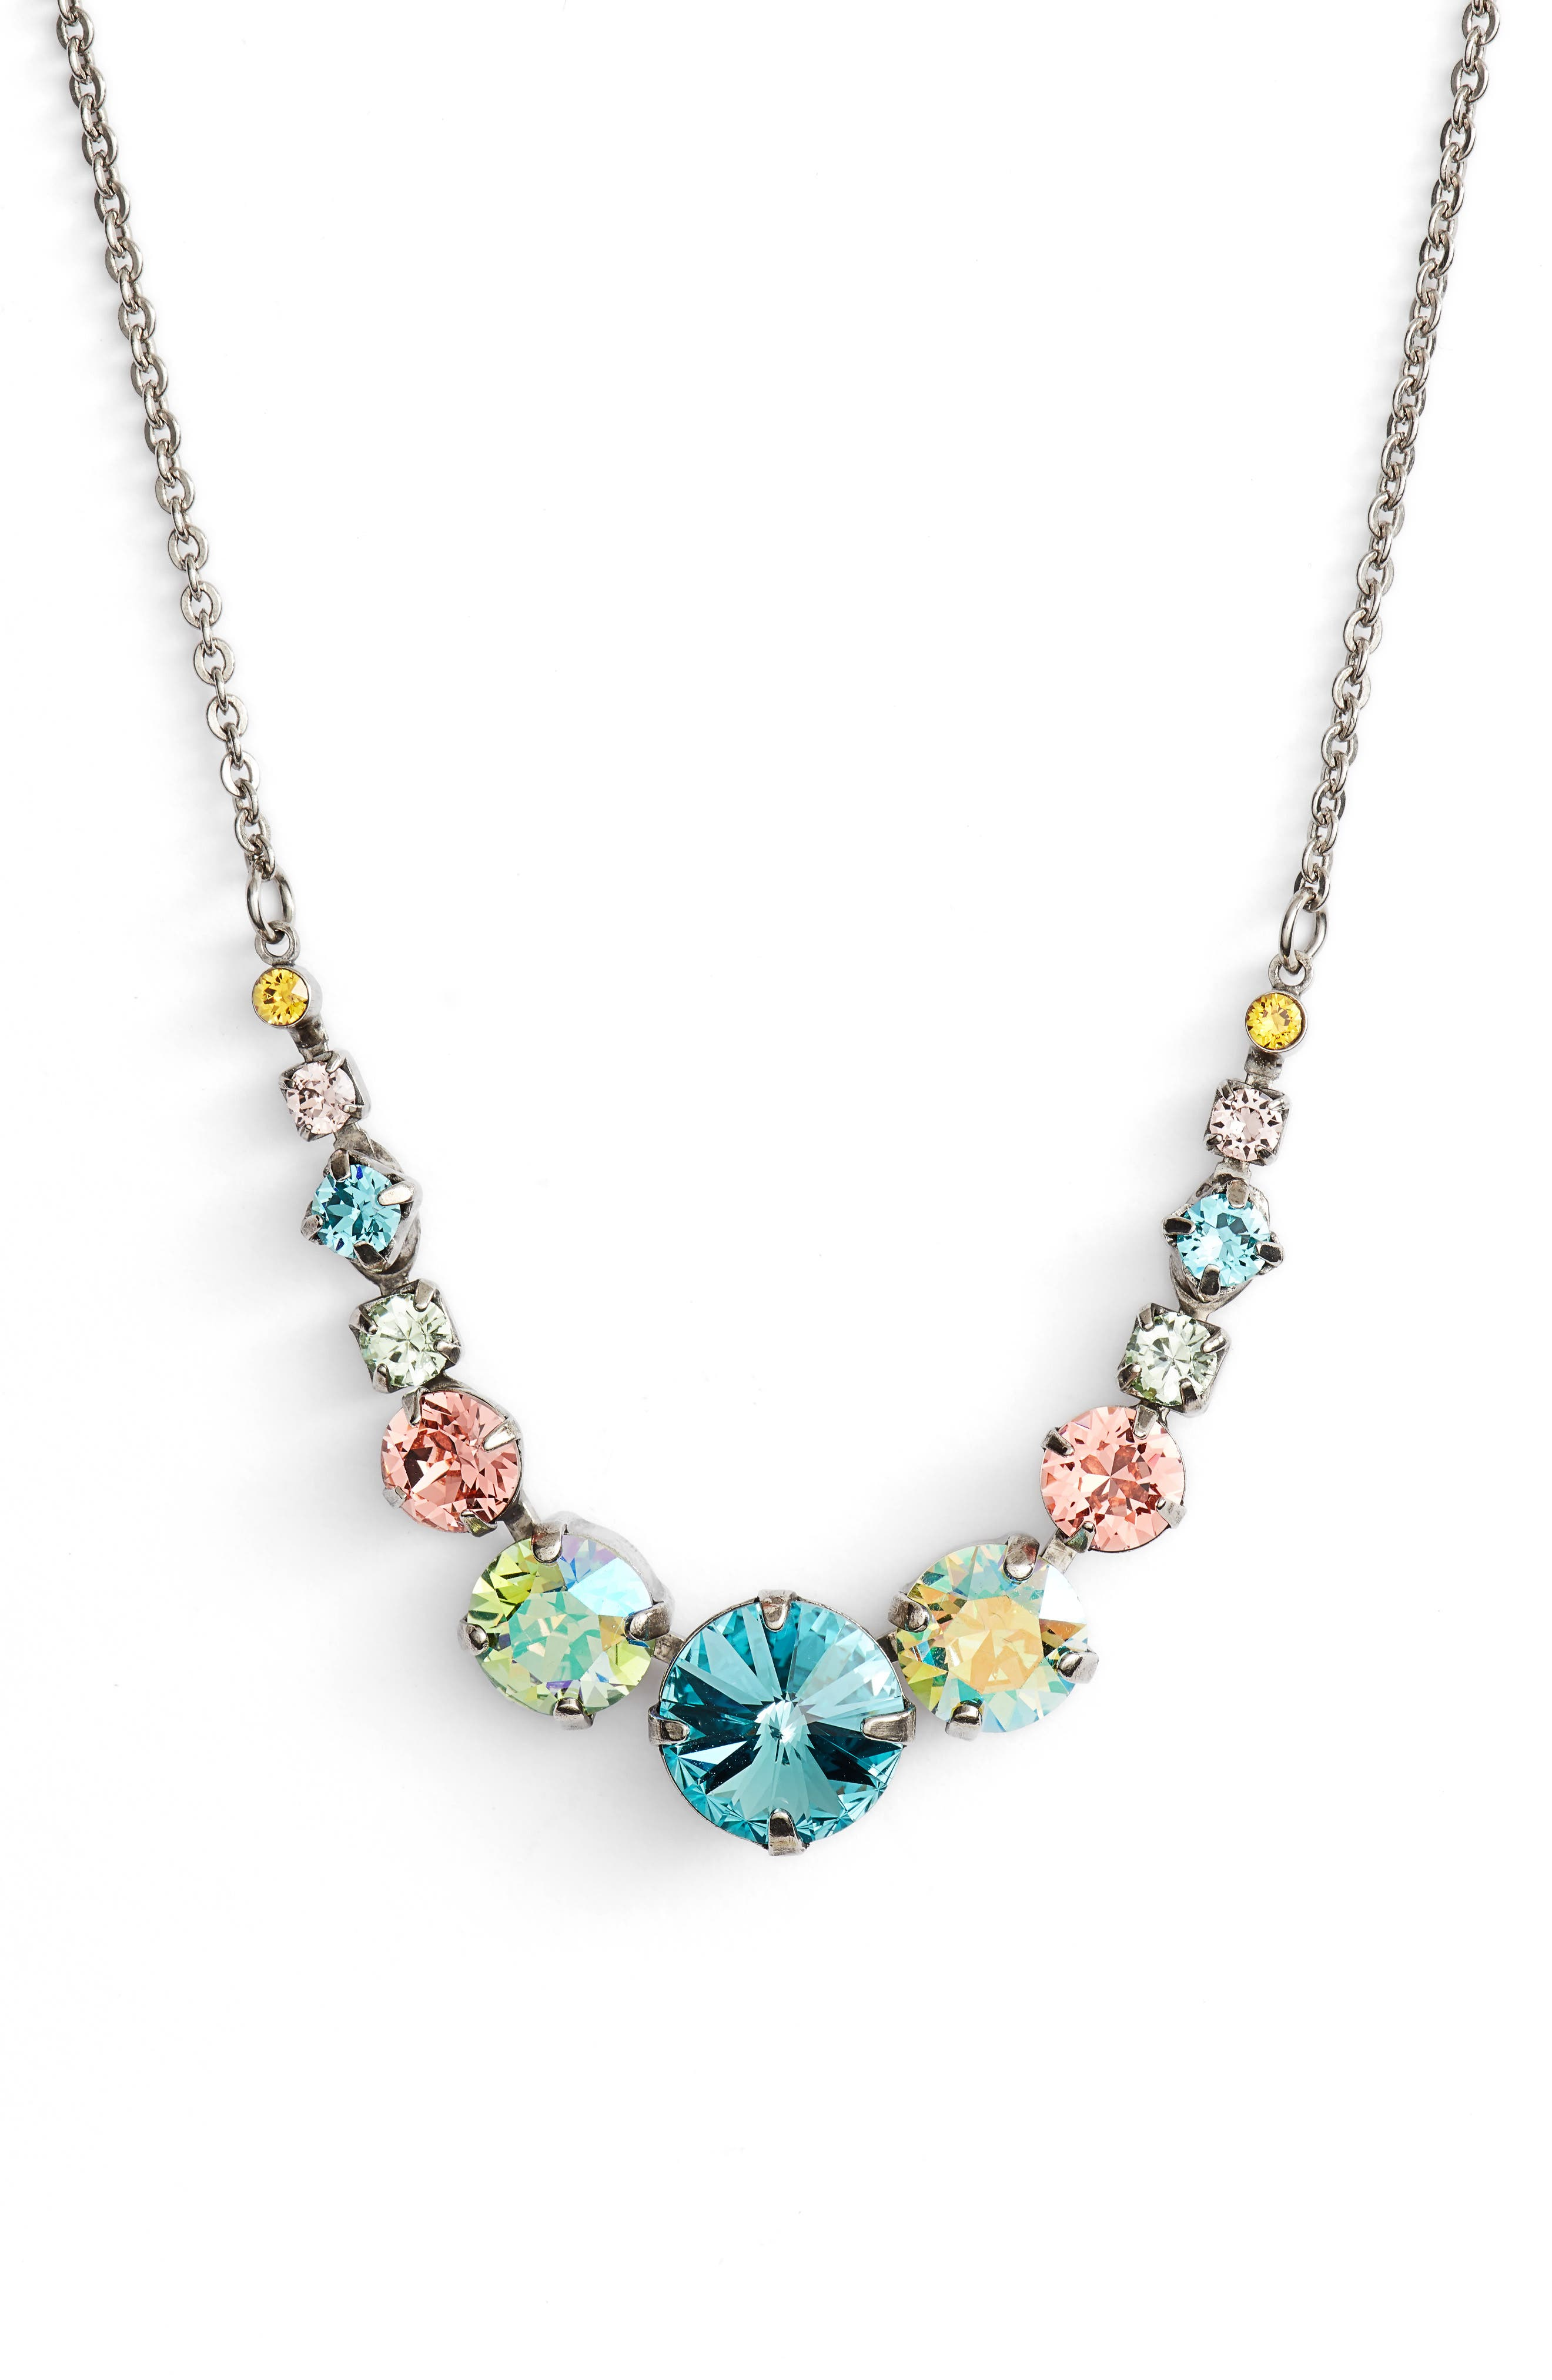 Delicate Round Crystal Necklace,                             Main thumbnail 1, color,                             AQUA/ PINK/ GREEN